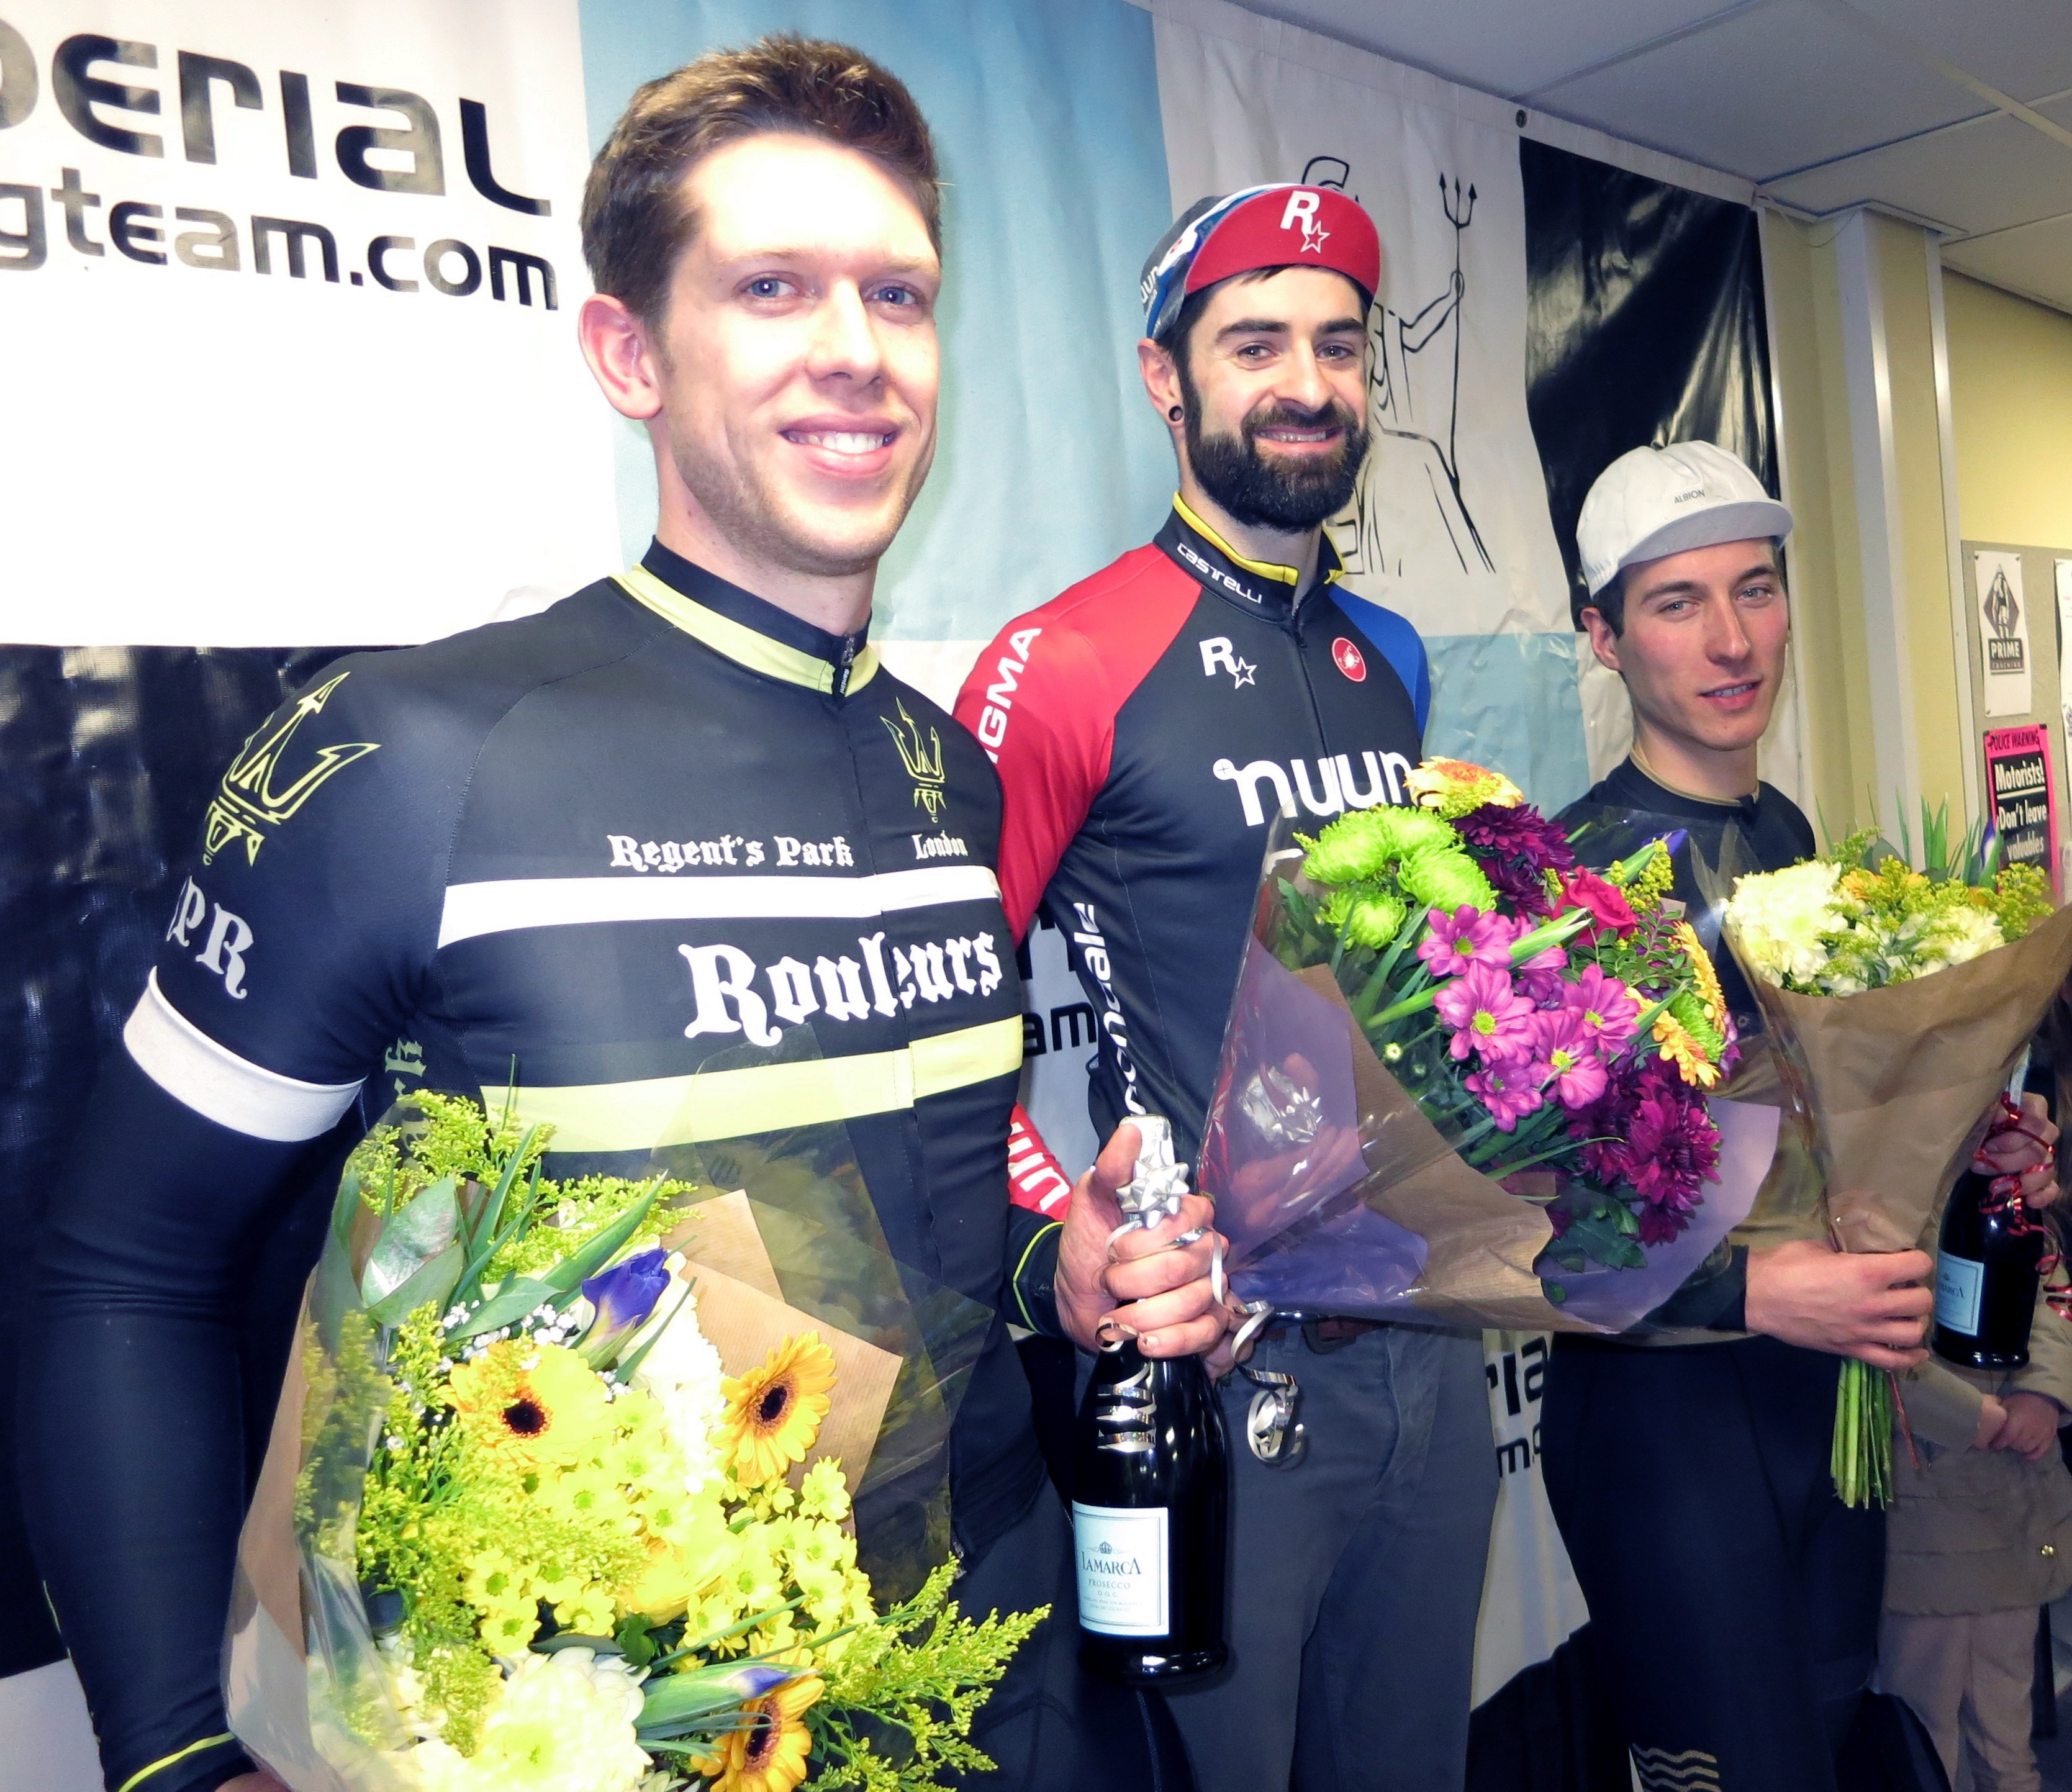 Imperial Winter Series 2016/2017 1st Tom Hargreaves, 2nd Daniel Cooper, 3rd Damien Clayton